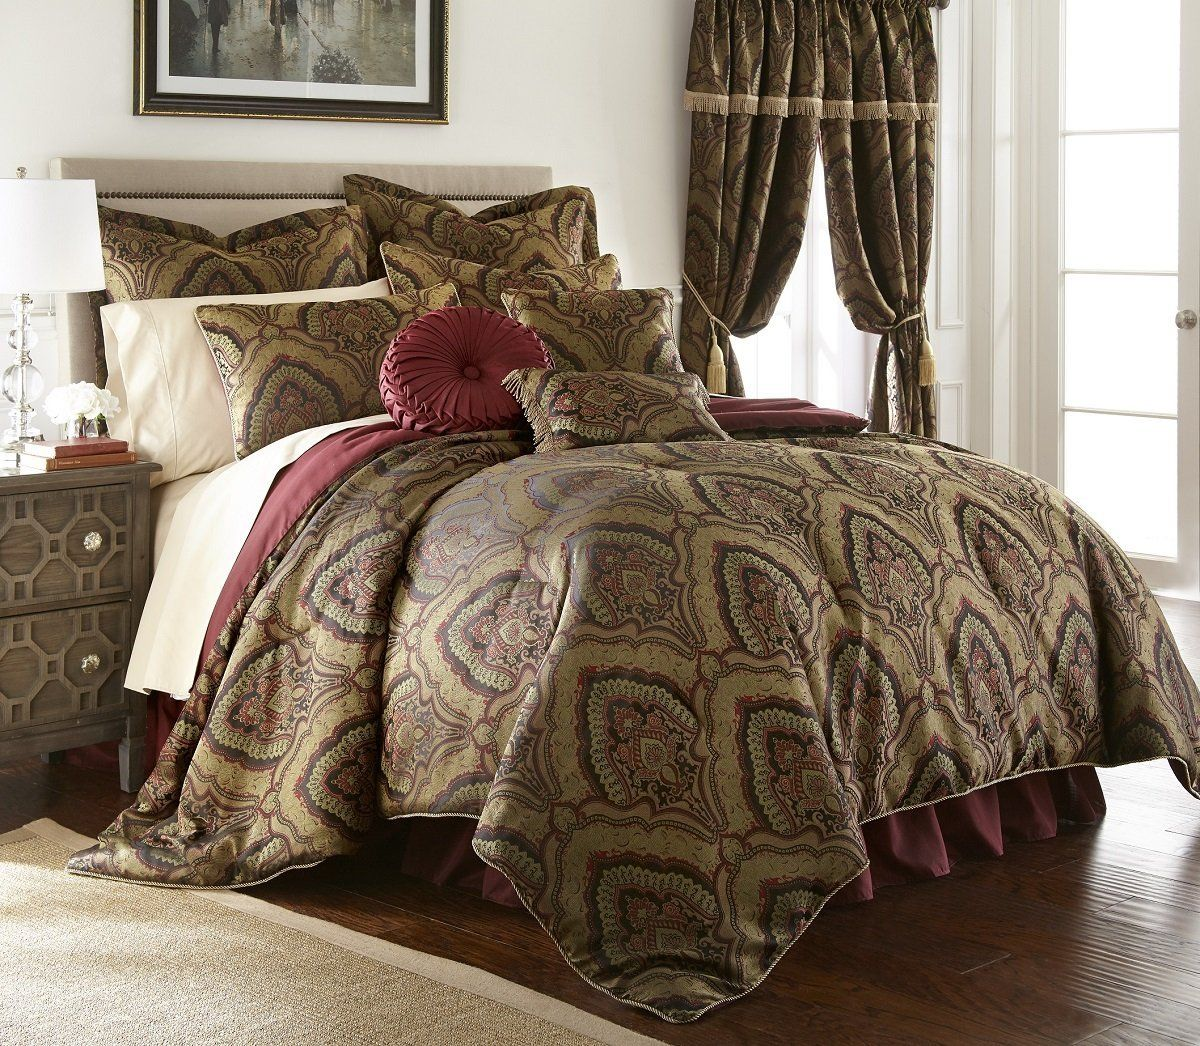 suede oversize a kitchen piece bed micro dark brown in amazon home com king size dp lavish comforter camel oversized set bedding queen x sets bag